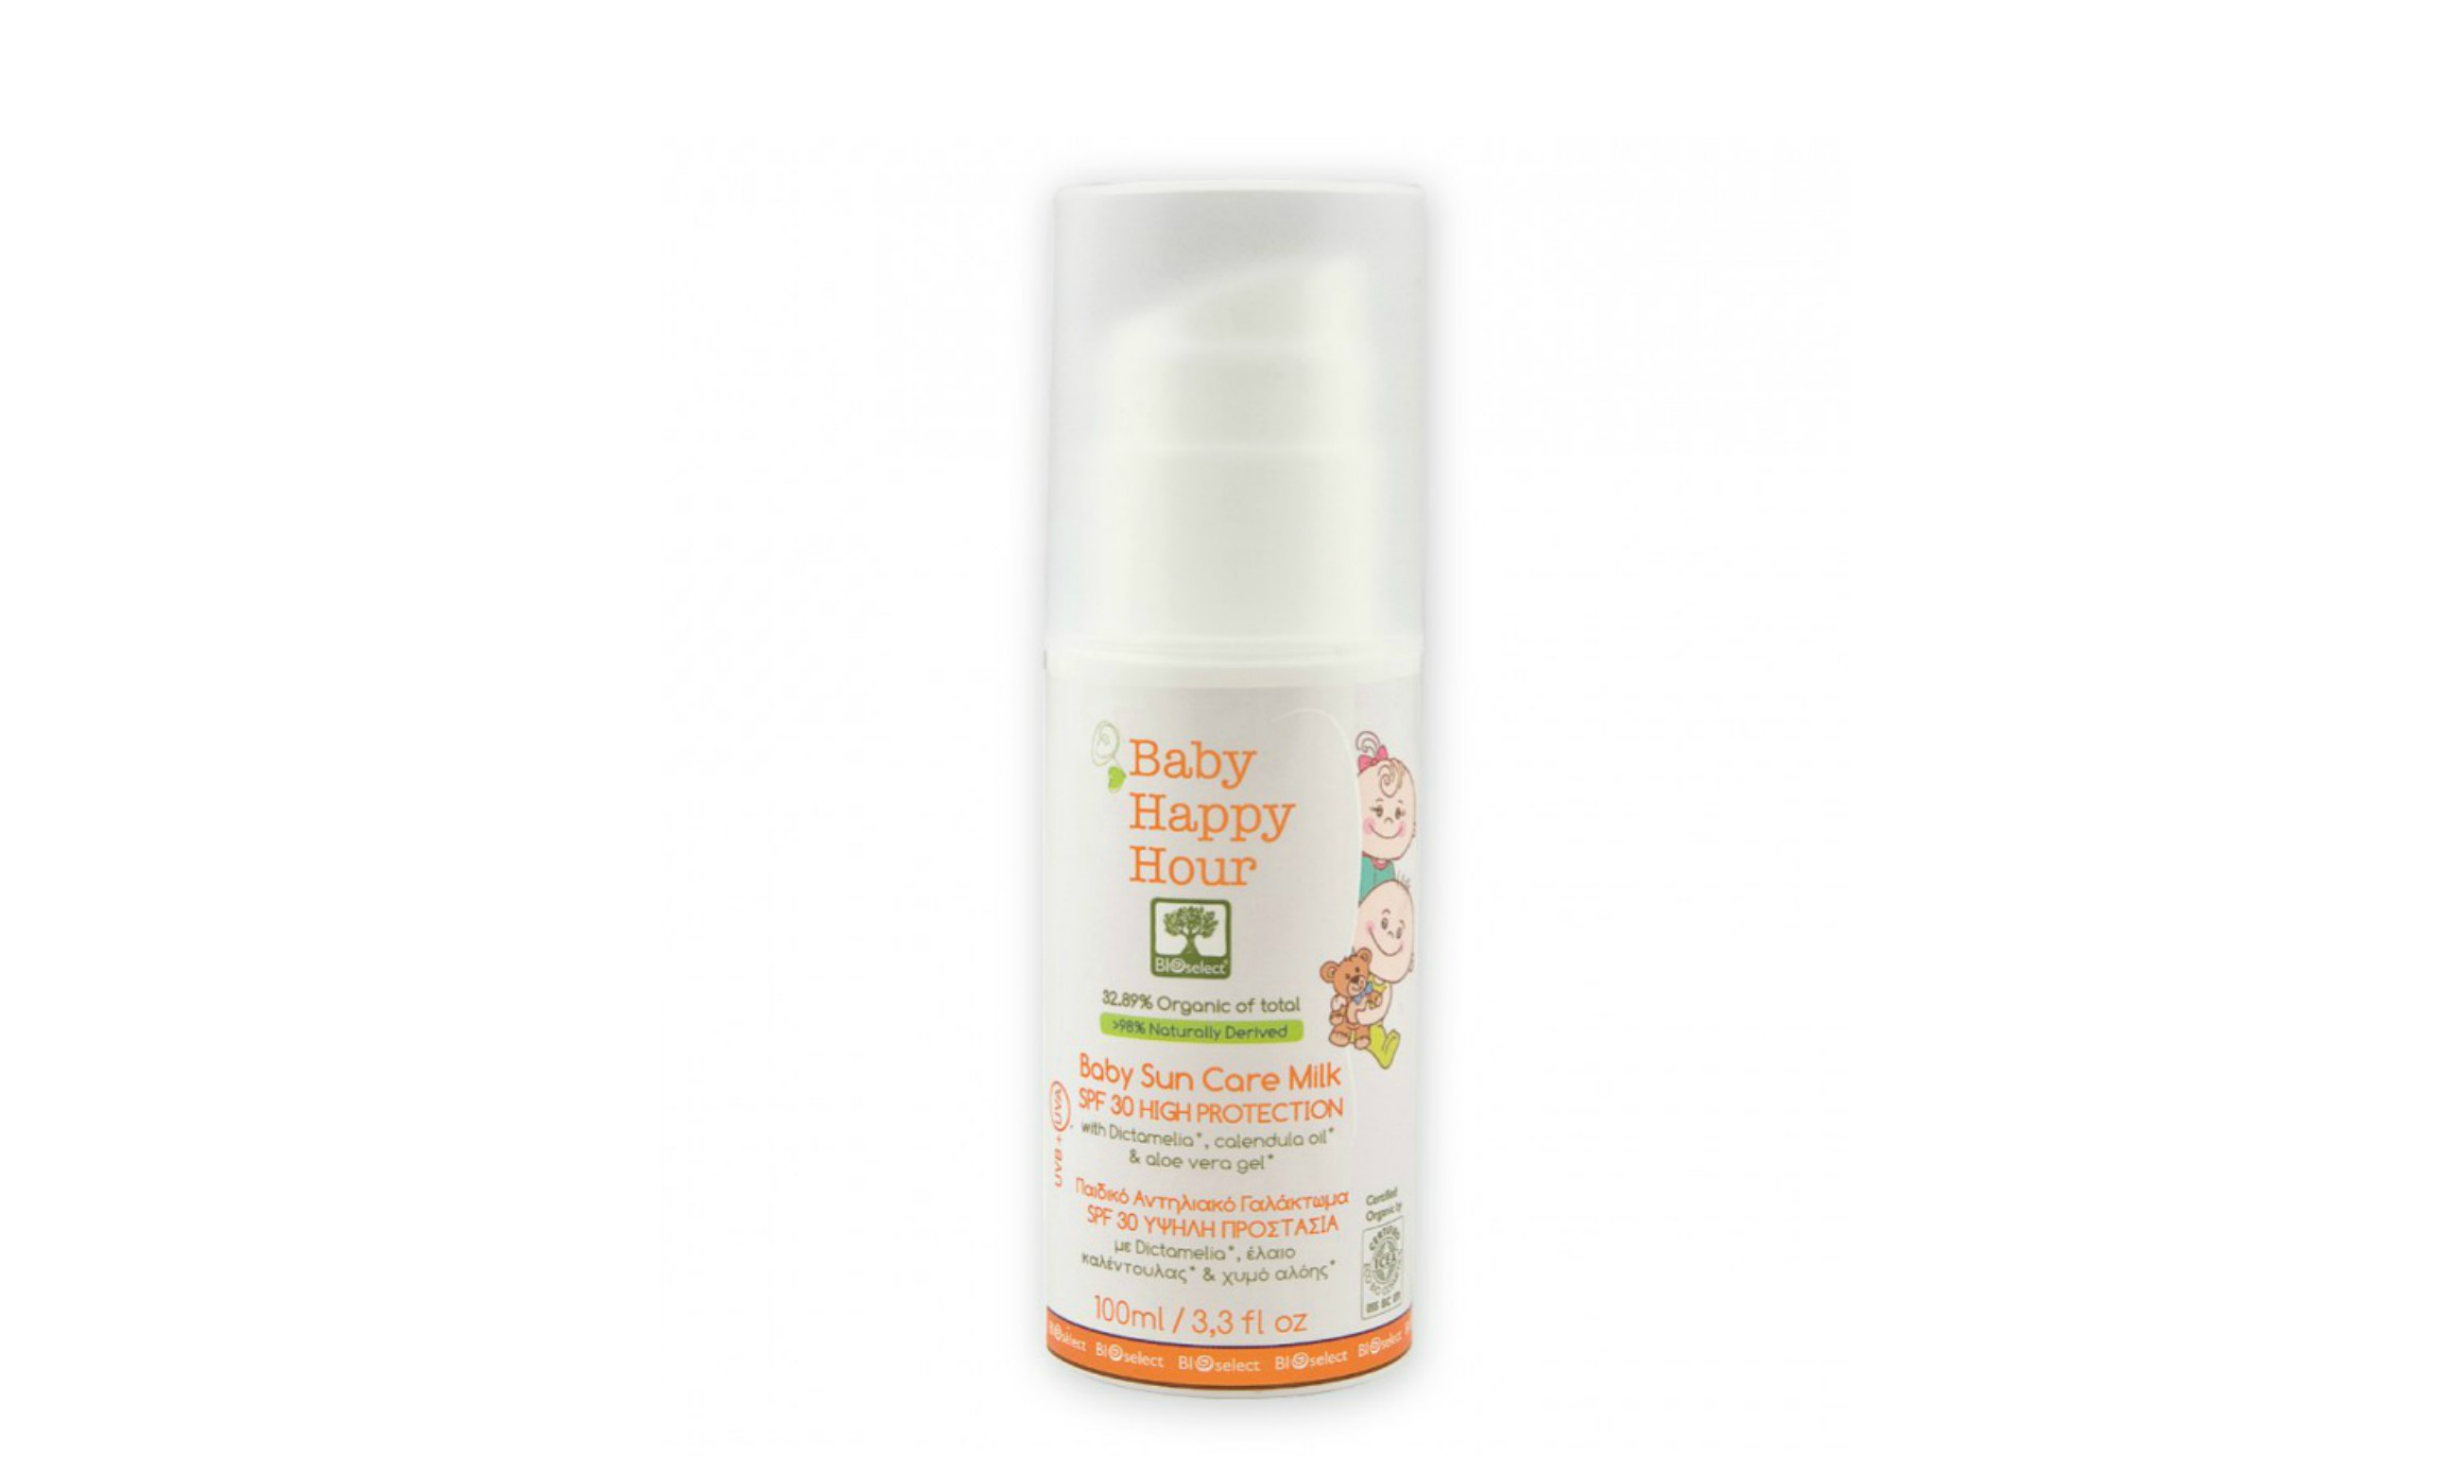 BIOselect Baby happy hour baby sun care milk